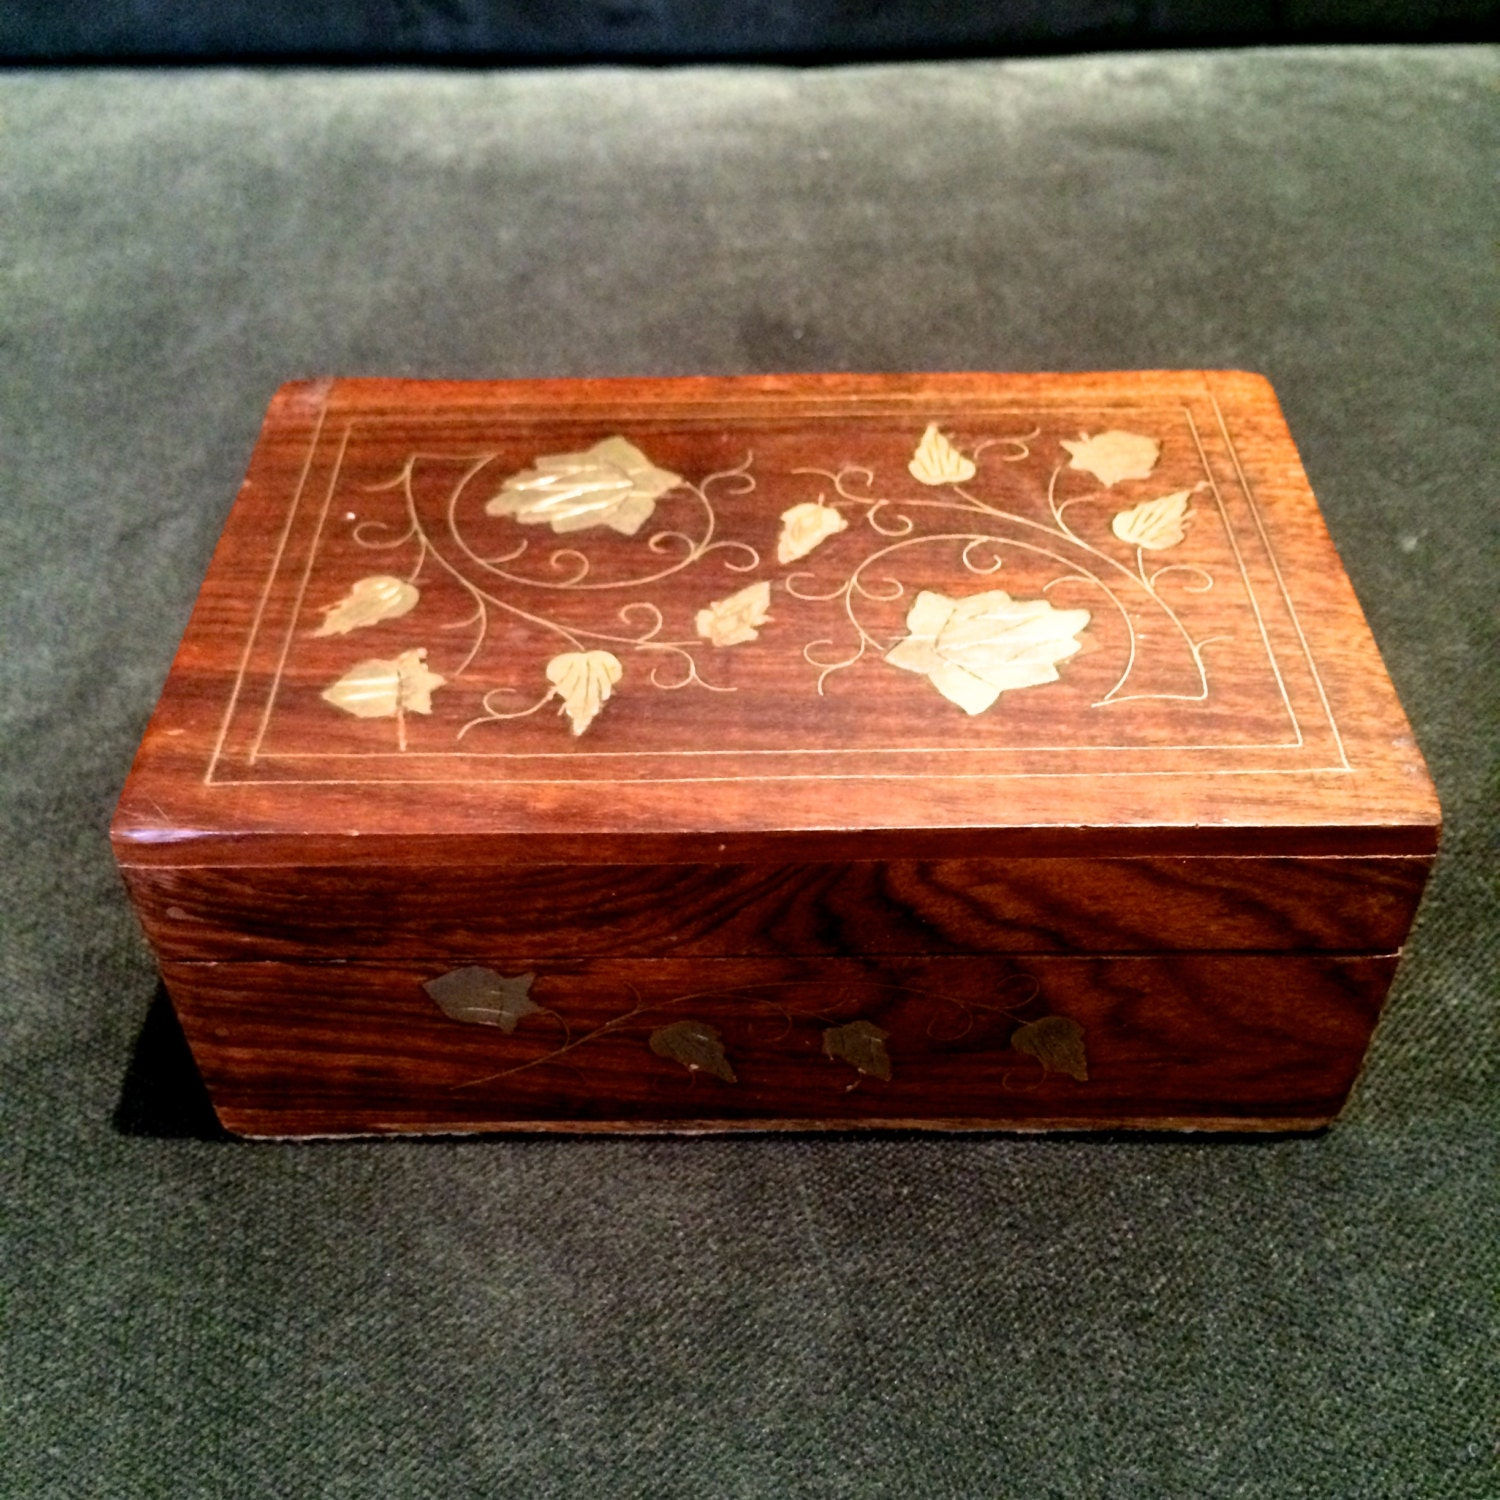 Decorative Wooden Jewelry Boxes : Wood box brass inlaid design decorative small wooden